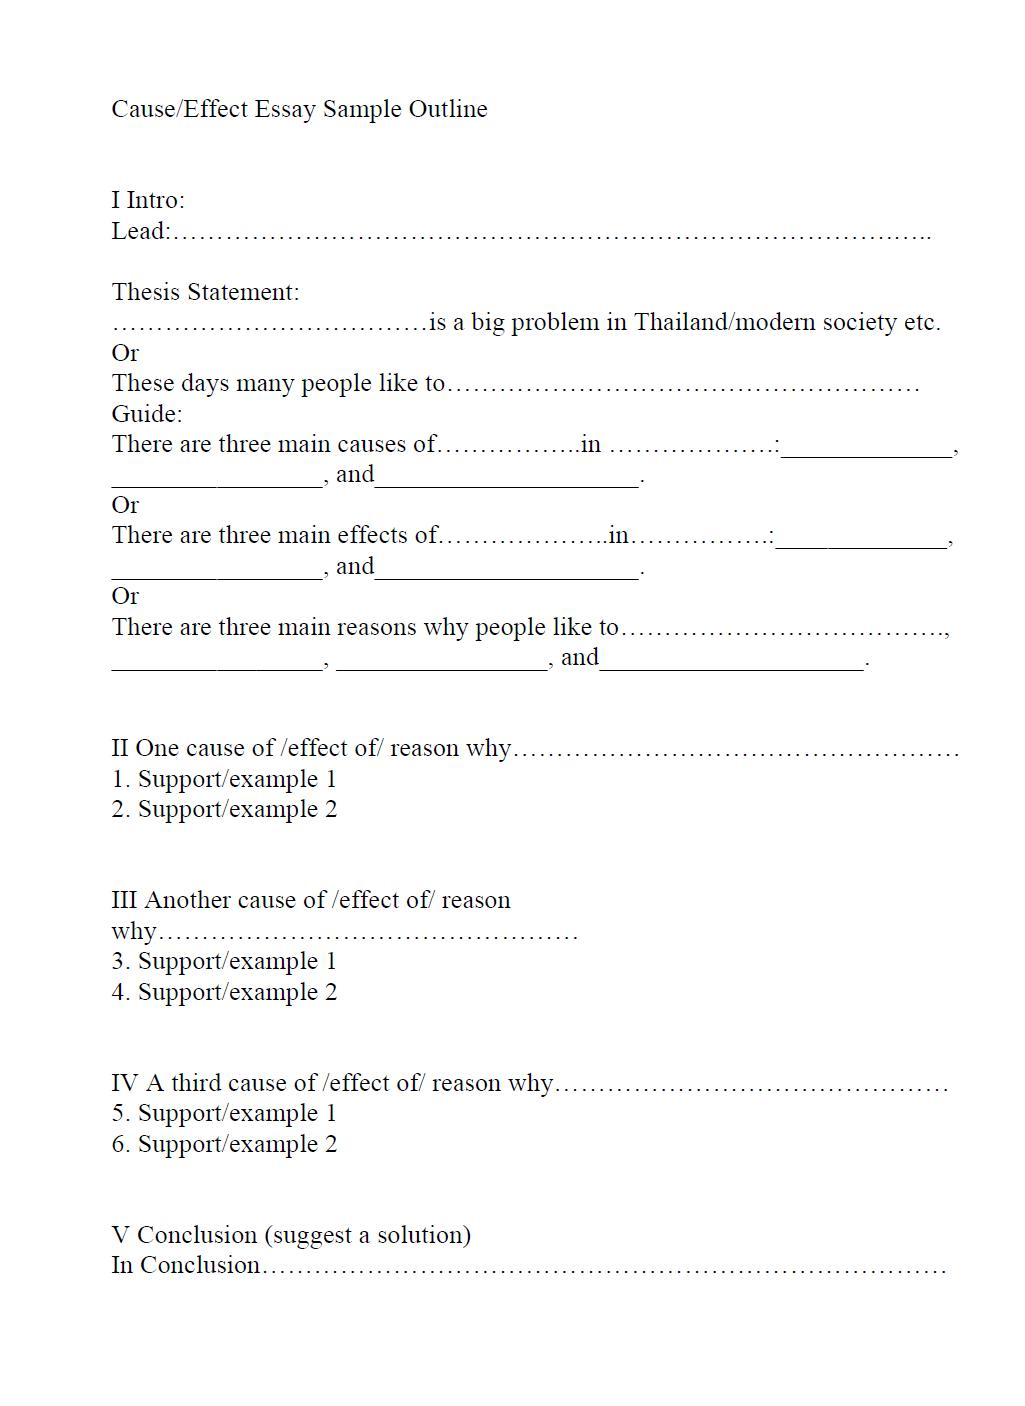 019 Outline And Essay Cause Effect Sample Impressive Template For Compare Contrast Printable Full